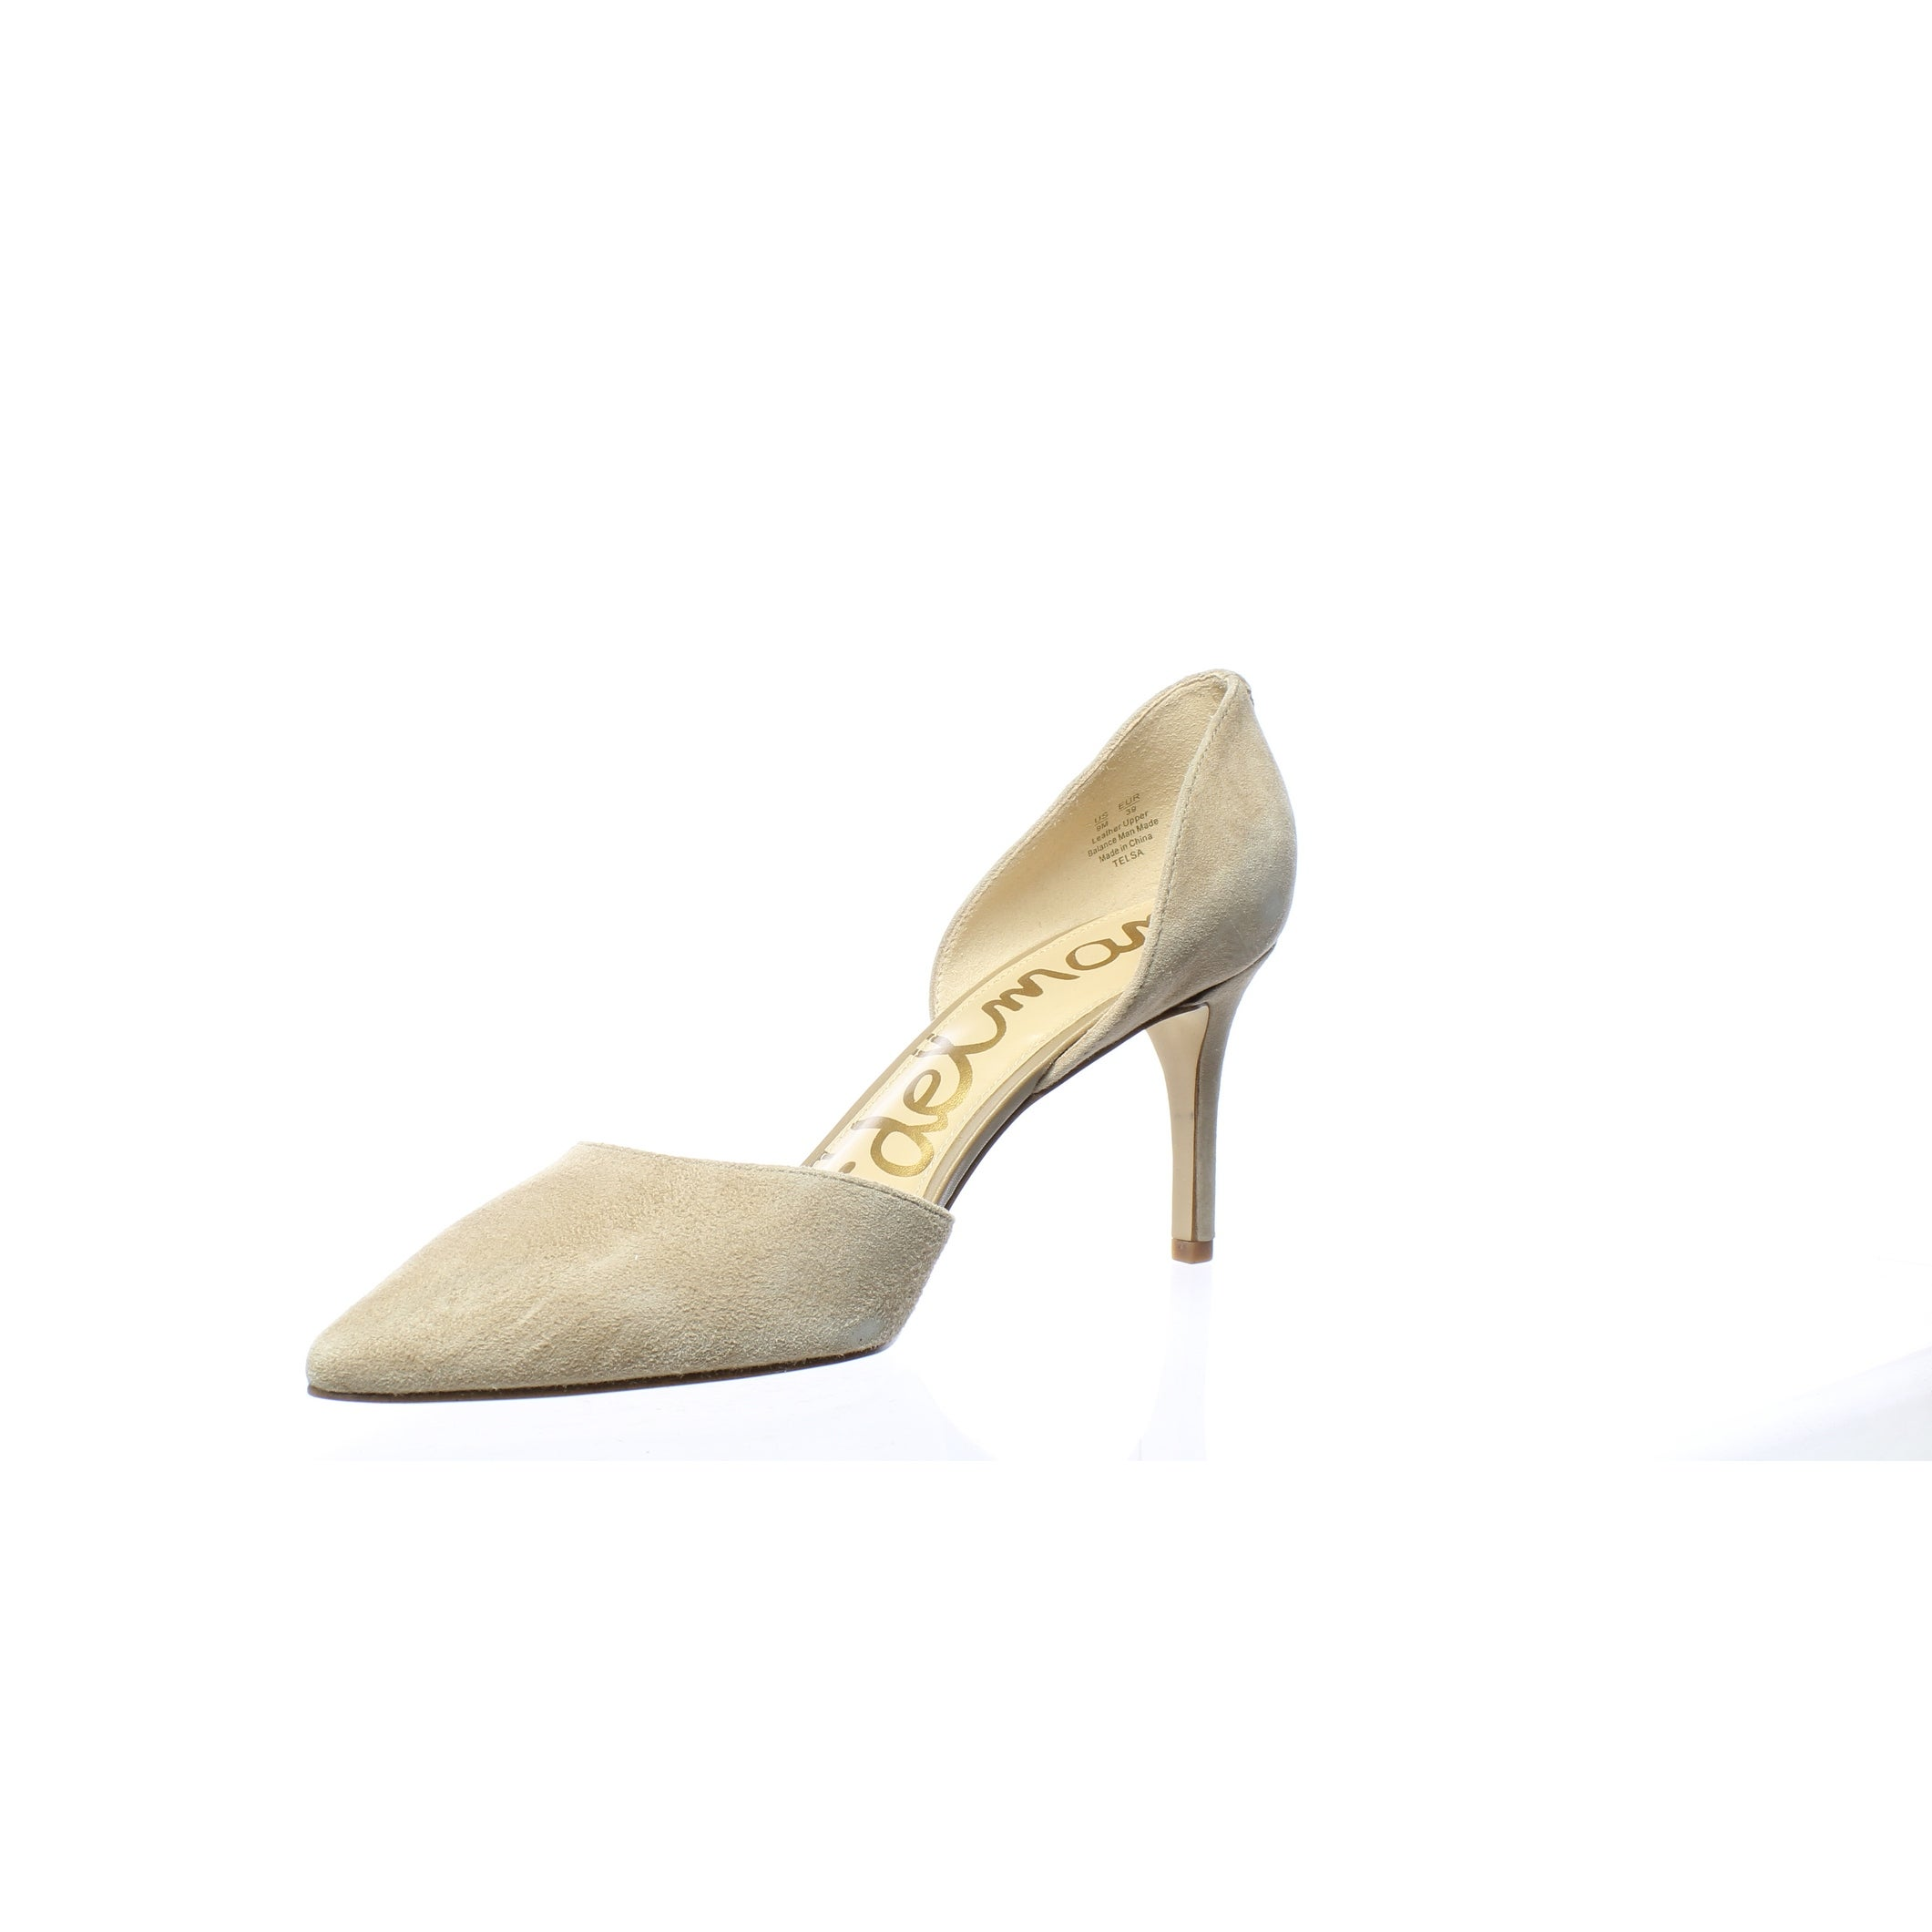 d9431a9d8d Shop Sam Edelman Womens Telsa Oatmeal Suede D'Orsays Size 9 - Free Shipping  Today - Overstock - 27624082